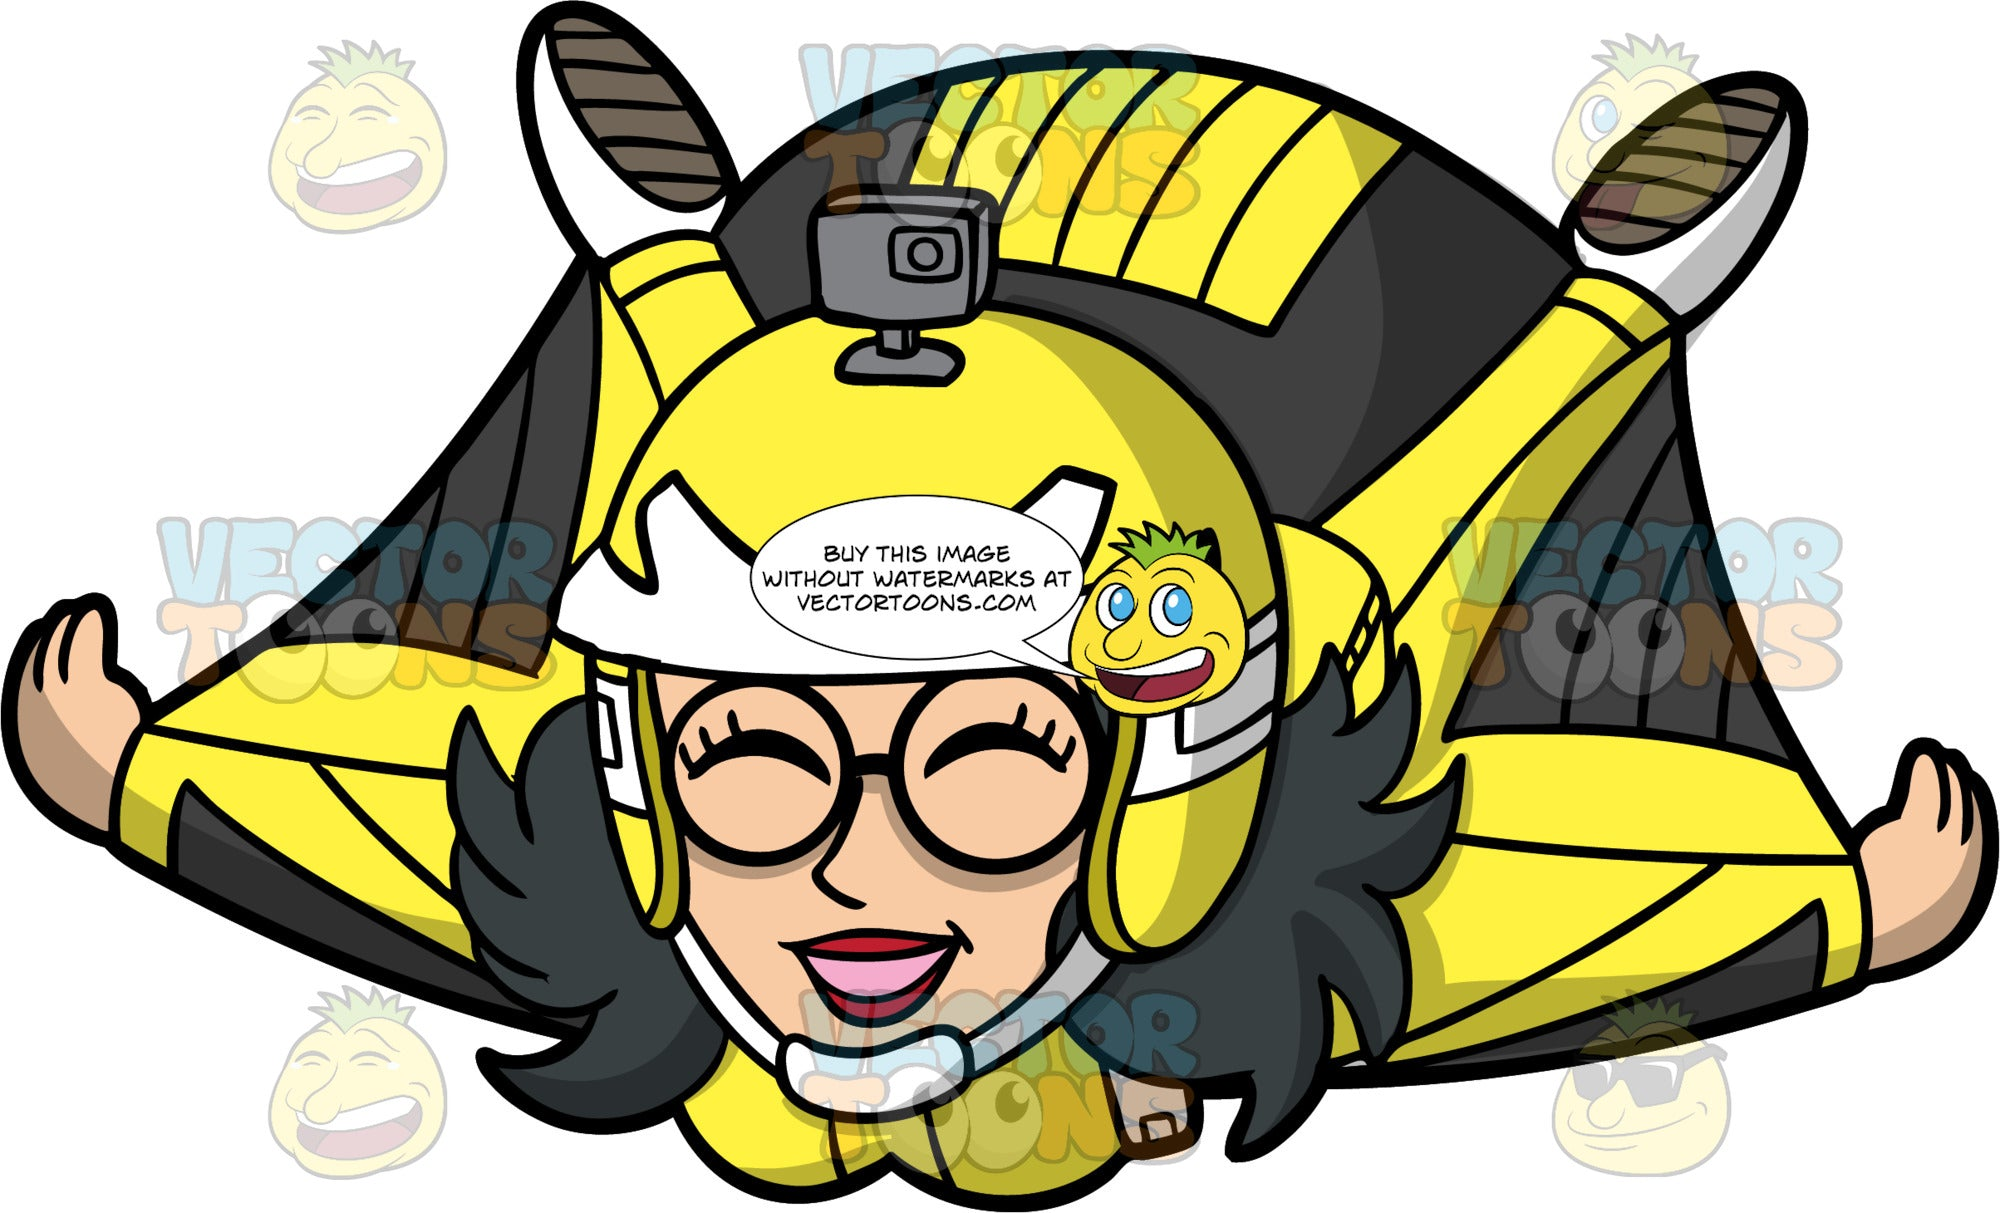 Lynn Enjoying A Wingsuit Flight. An Asian woman wearing a black and yellow wingsuit, a yellow helmet with a camera attached to it, and round eyeglasses, smiles as she flies in her wingsuit